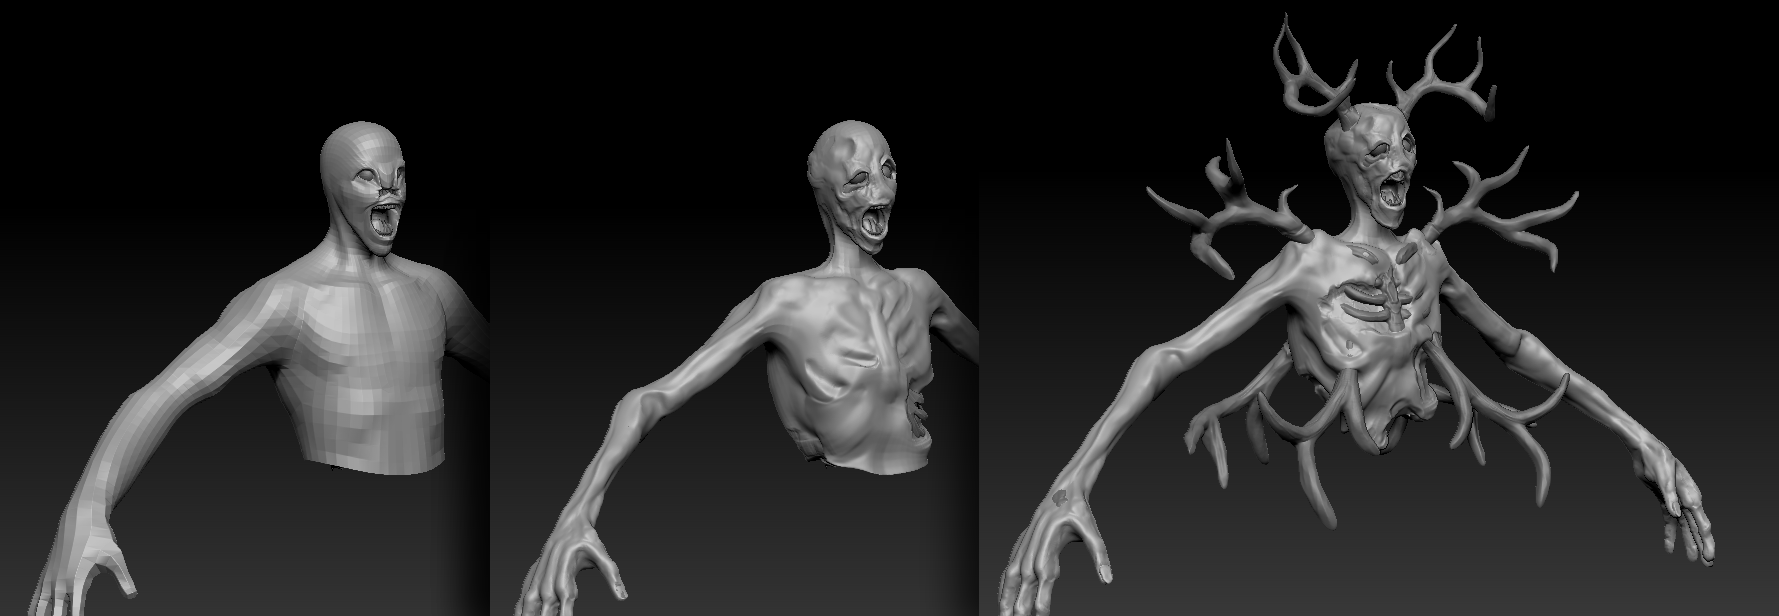 Iteration on the Banshee sculpt from start (left) to end (right)